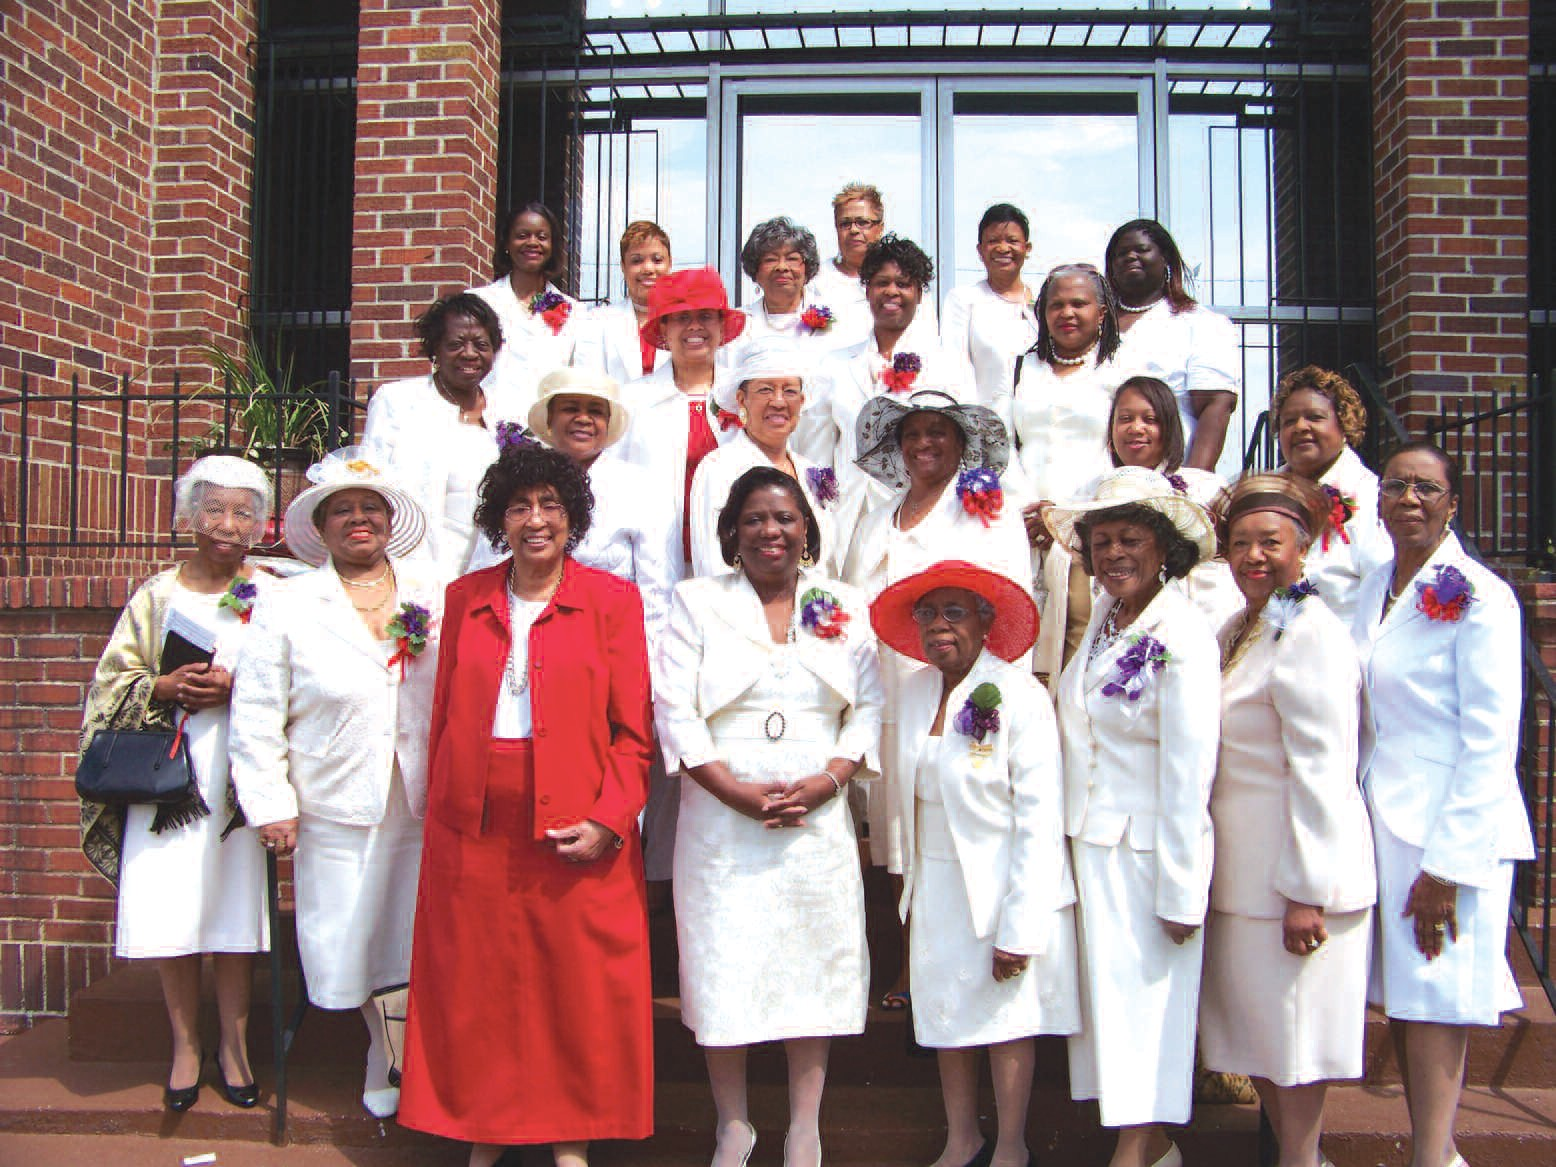 Members of the Savannah Alumnae Chapter of Delta Sigma Theta Sorority, Inc.